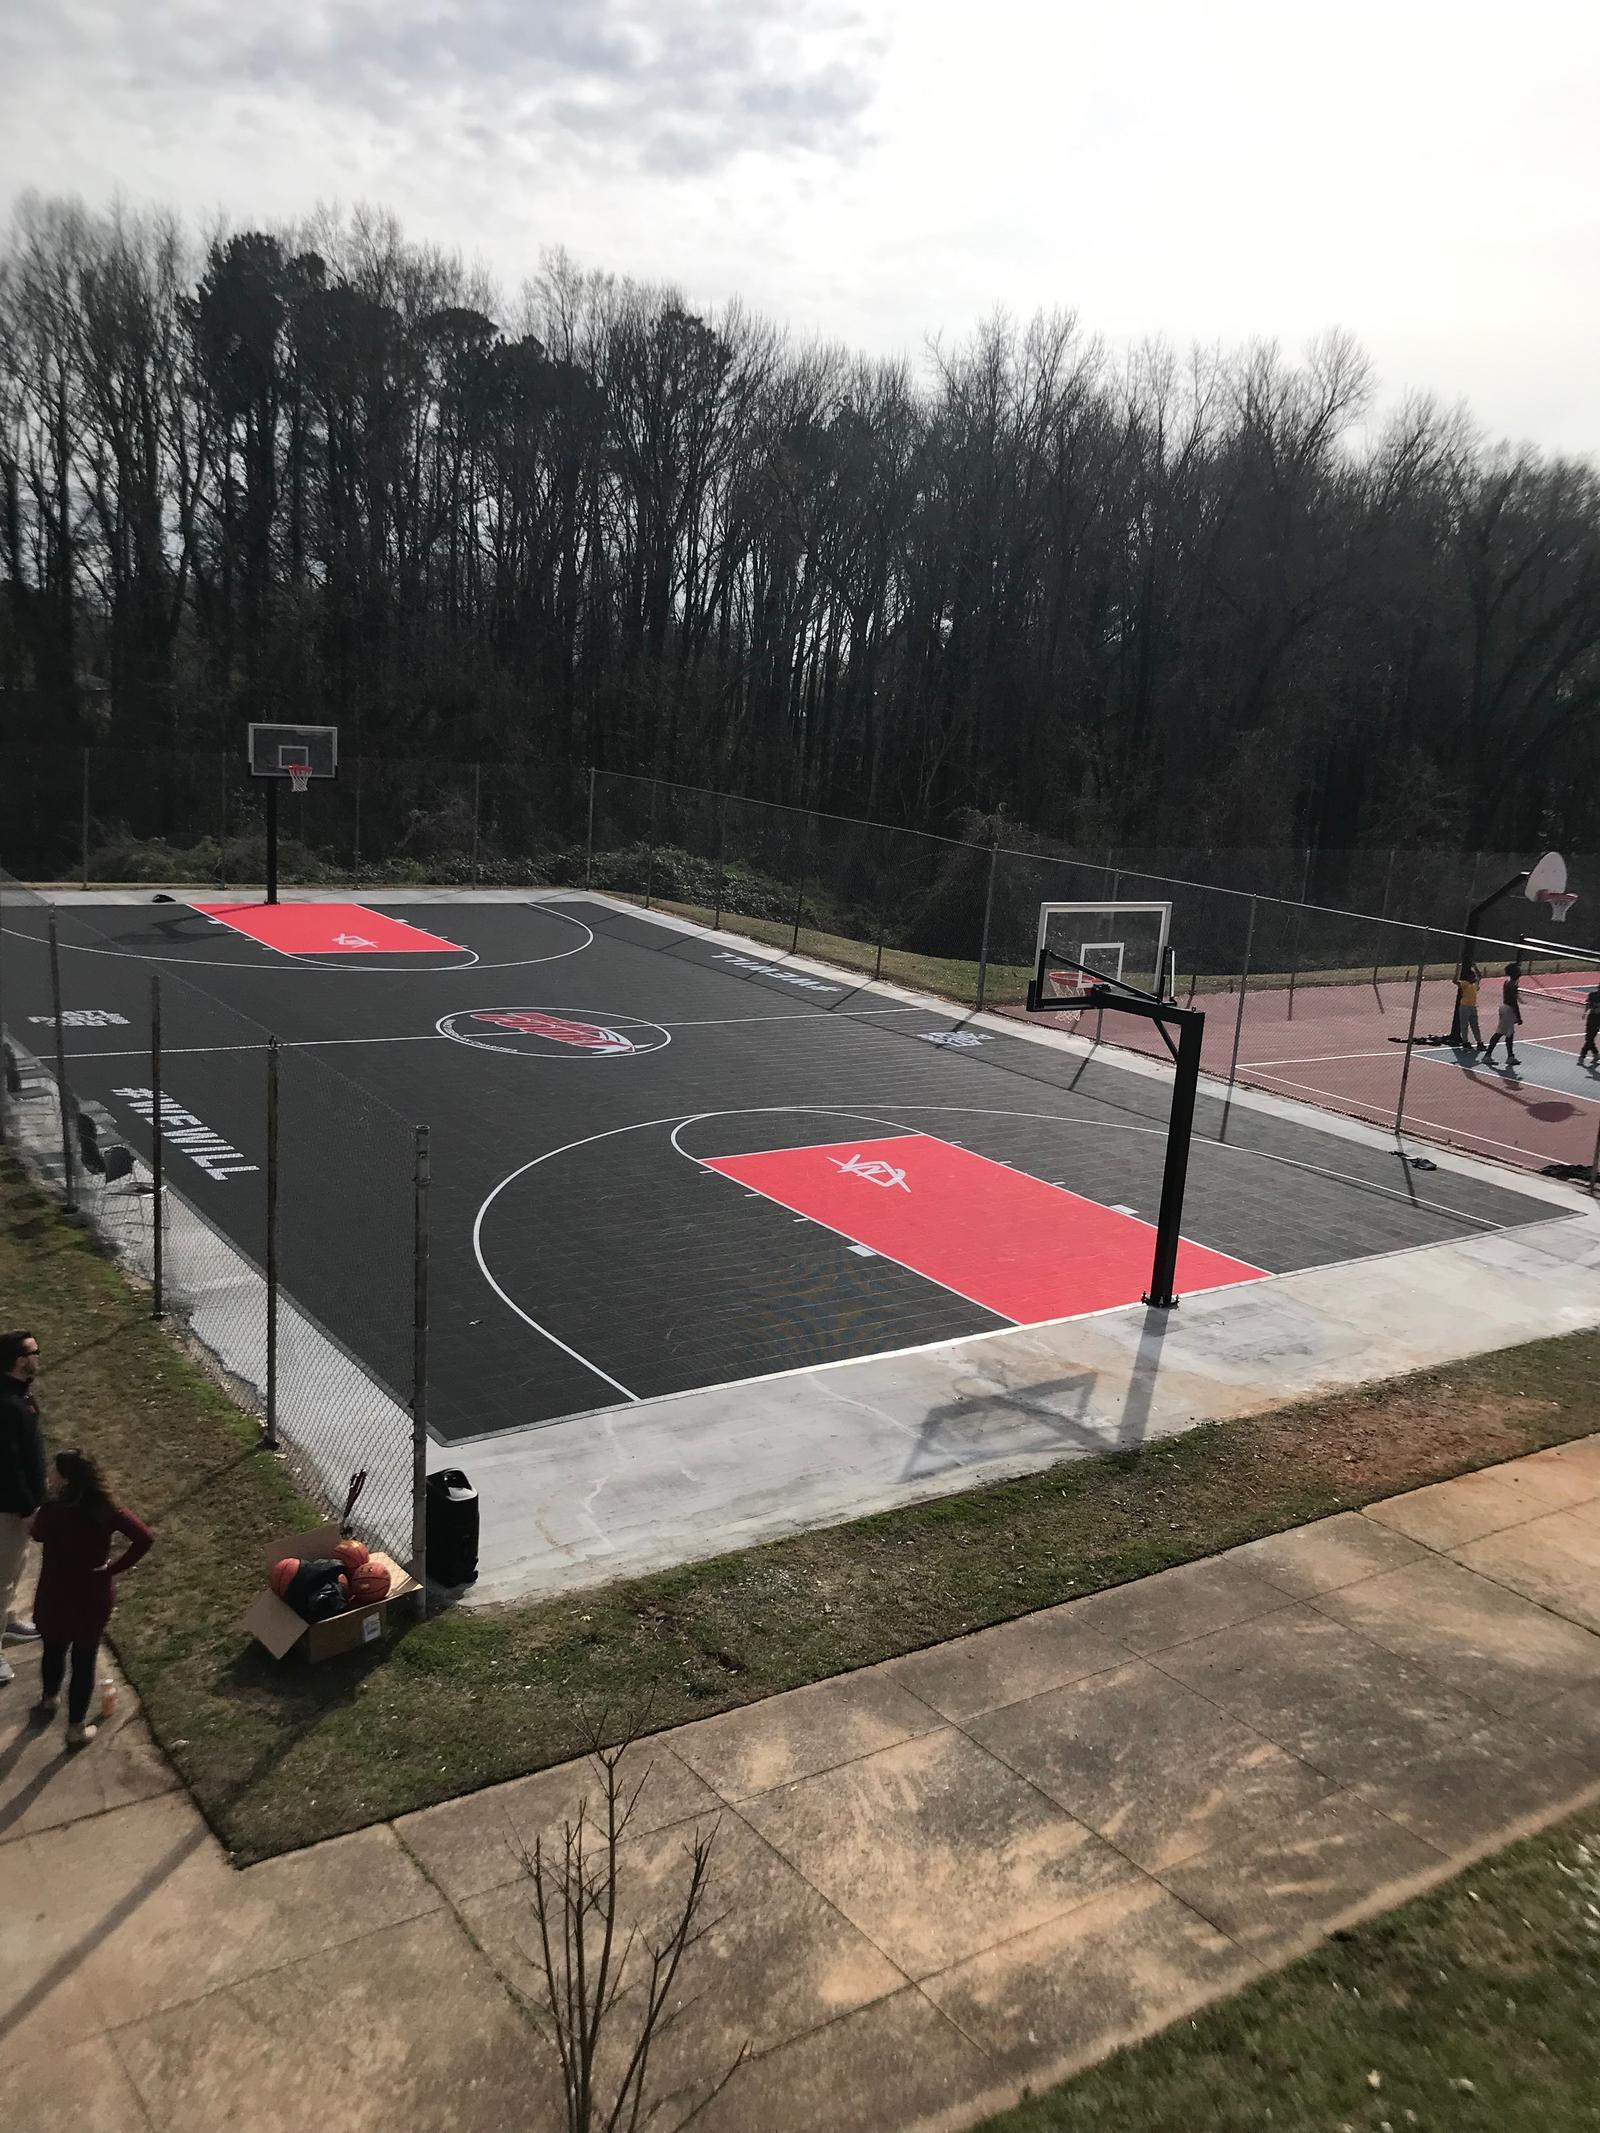 After the outdoor court refurbishment